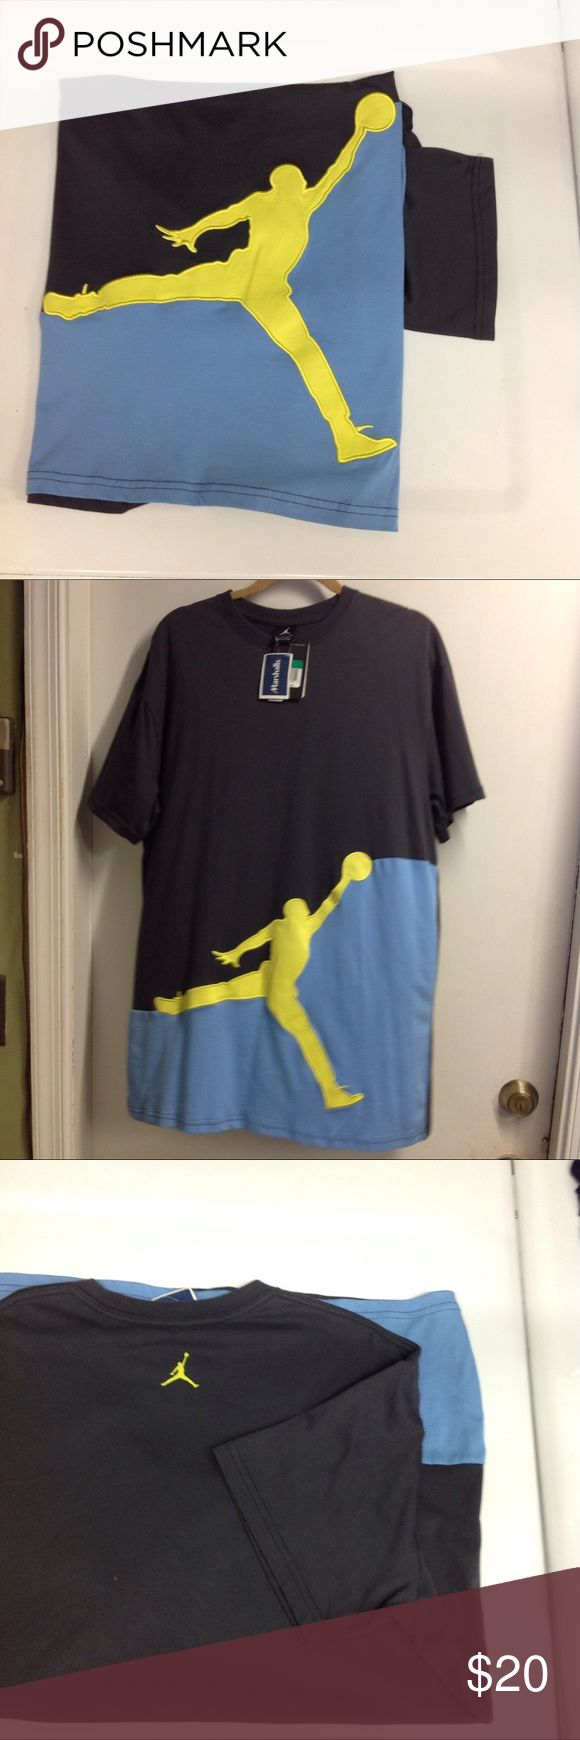 🌼Nike JumpMan Mens Shirt JORDAN SPORT CUT, Excellent Condition, Jordan's famous oversized look.Soft Black, Yellow and Blue (See pictures for measurements. Nike Shirts Tees - Short Sleeve